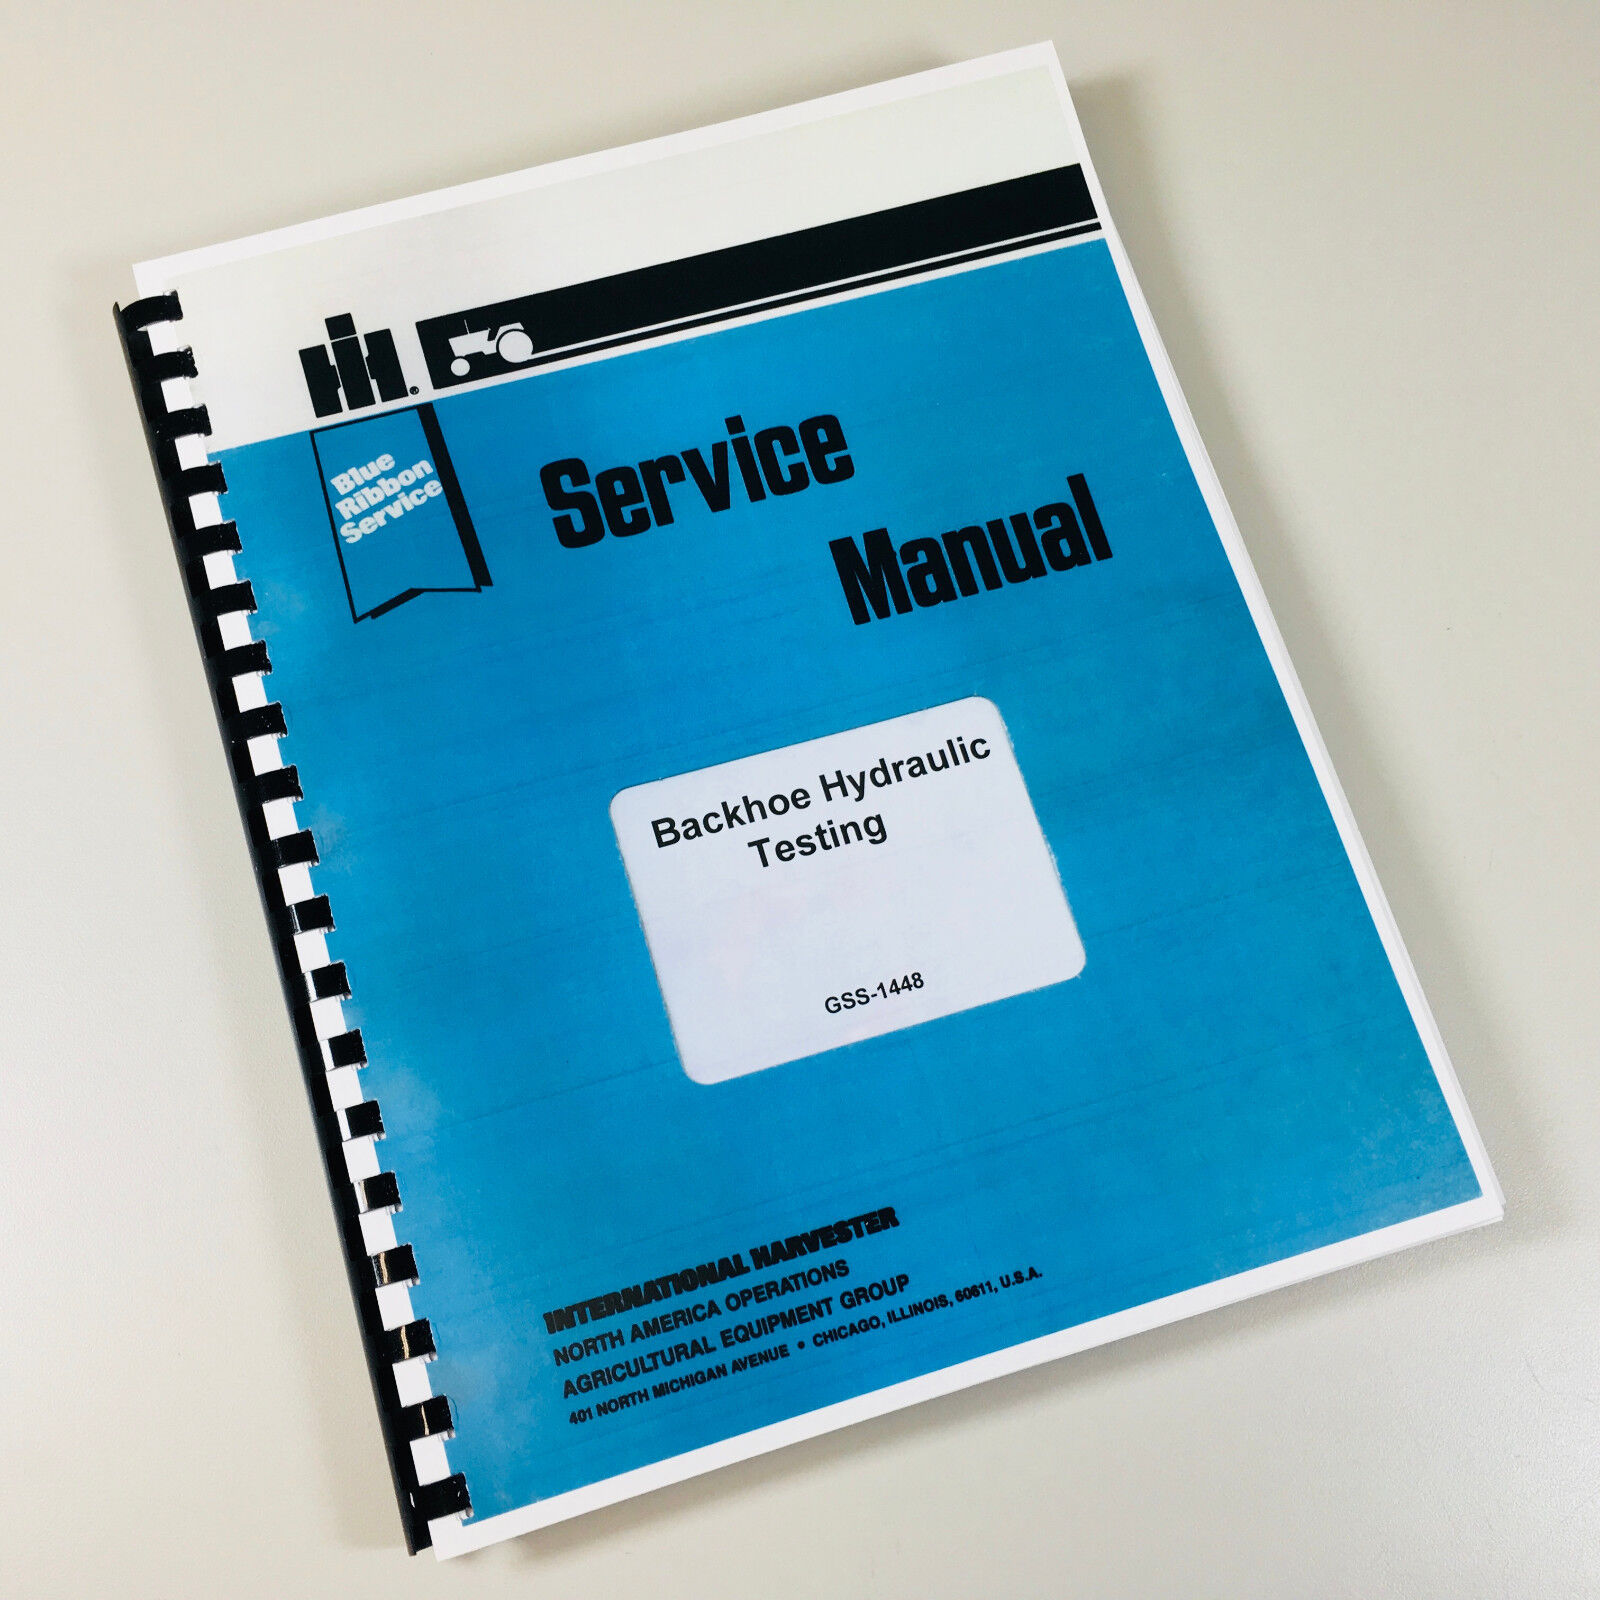 New Print, Complete, Factory OEM service manual has 208 pages